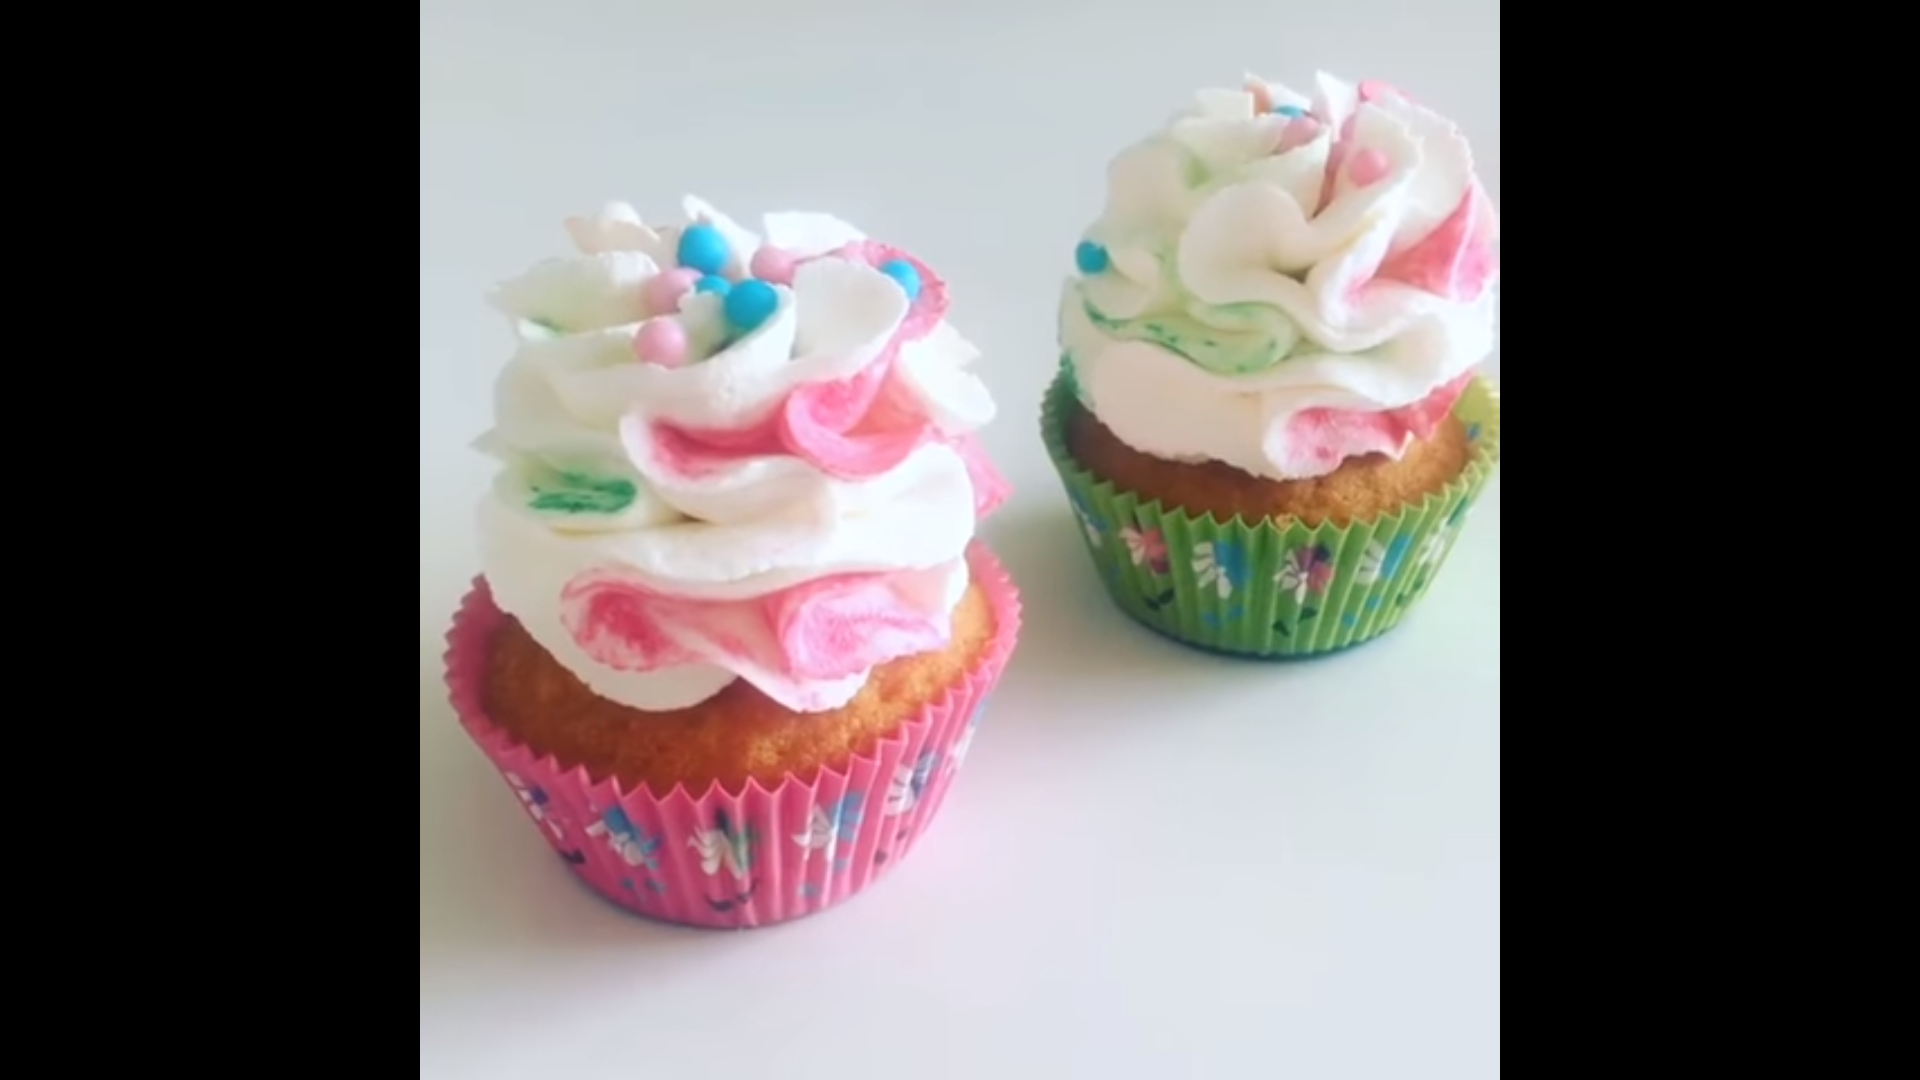 MultiColored Frosting Cupcakes